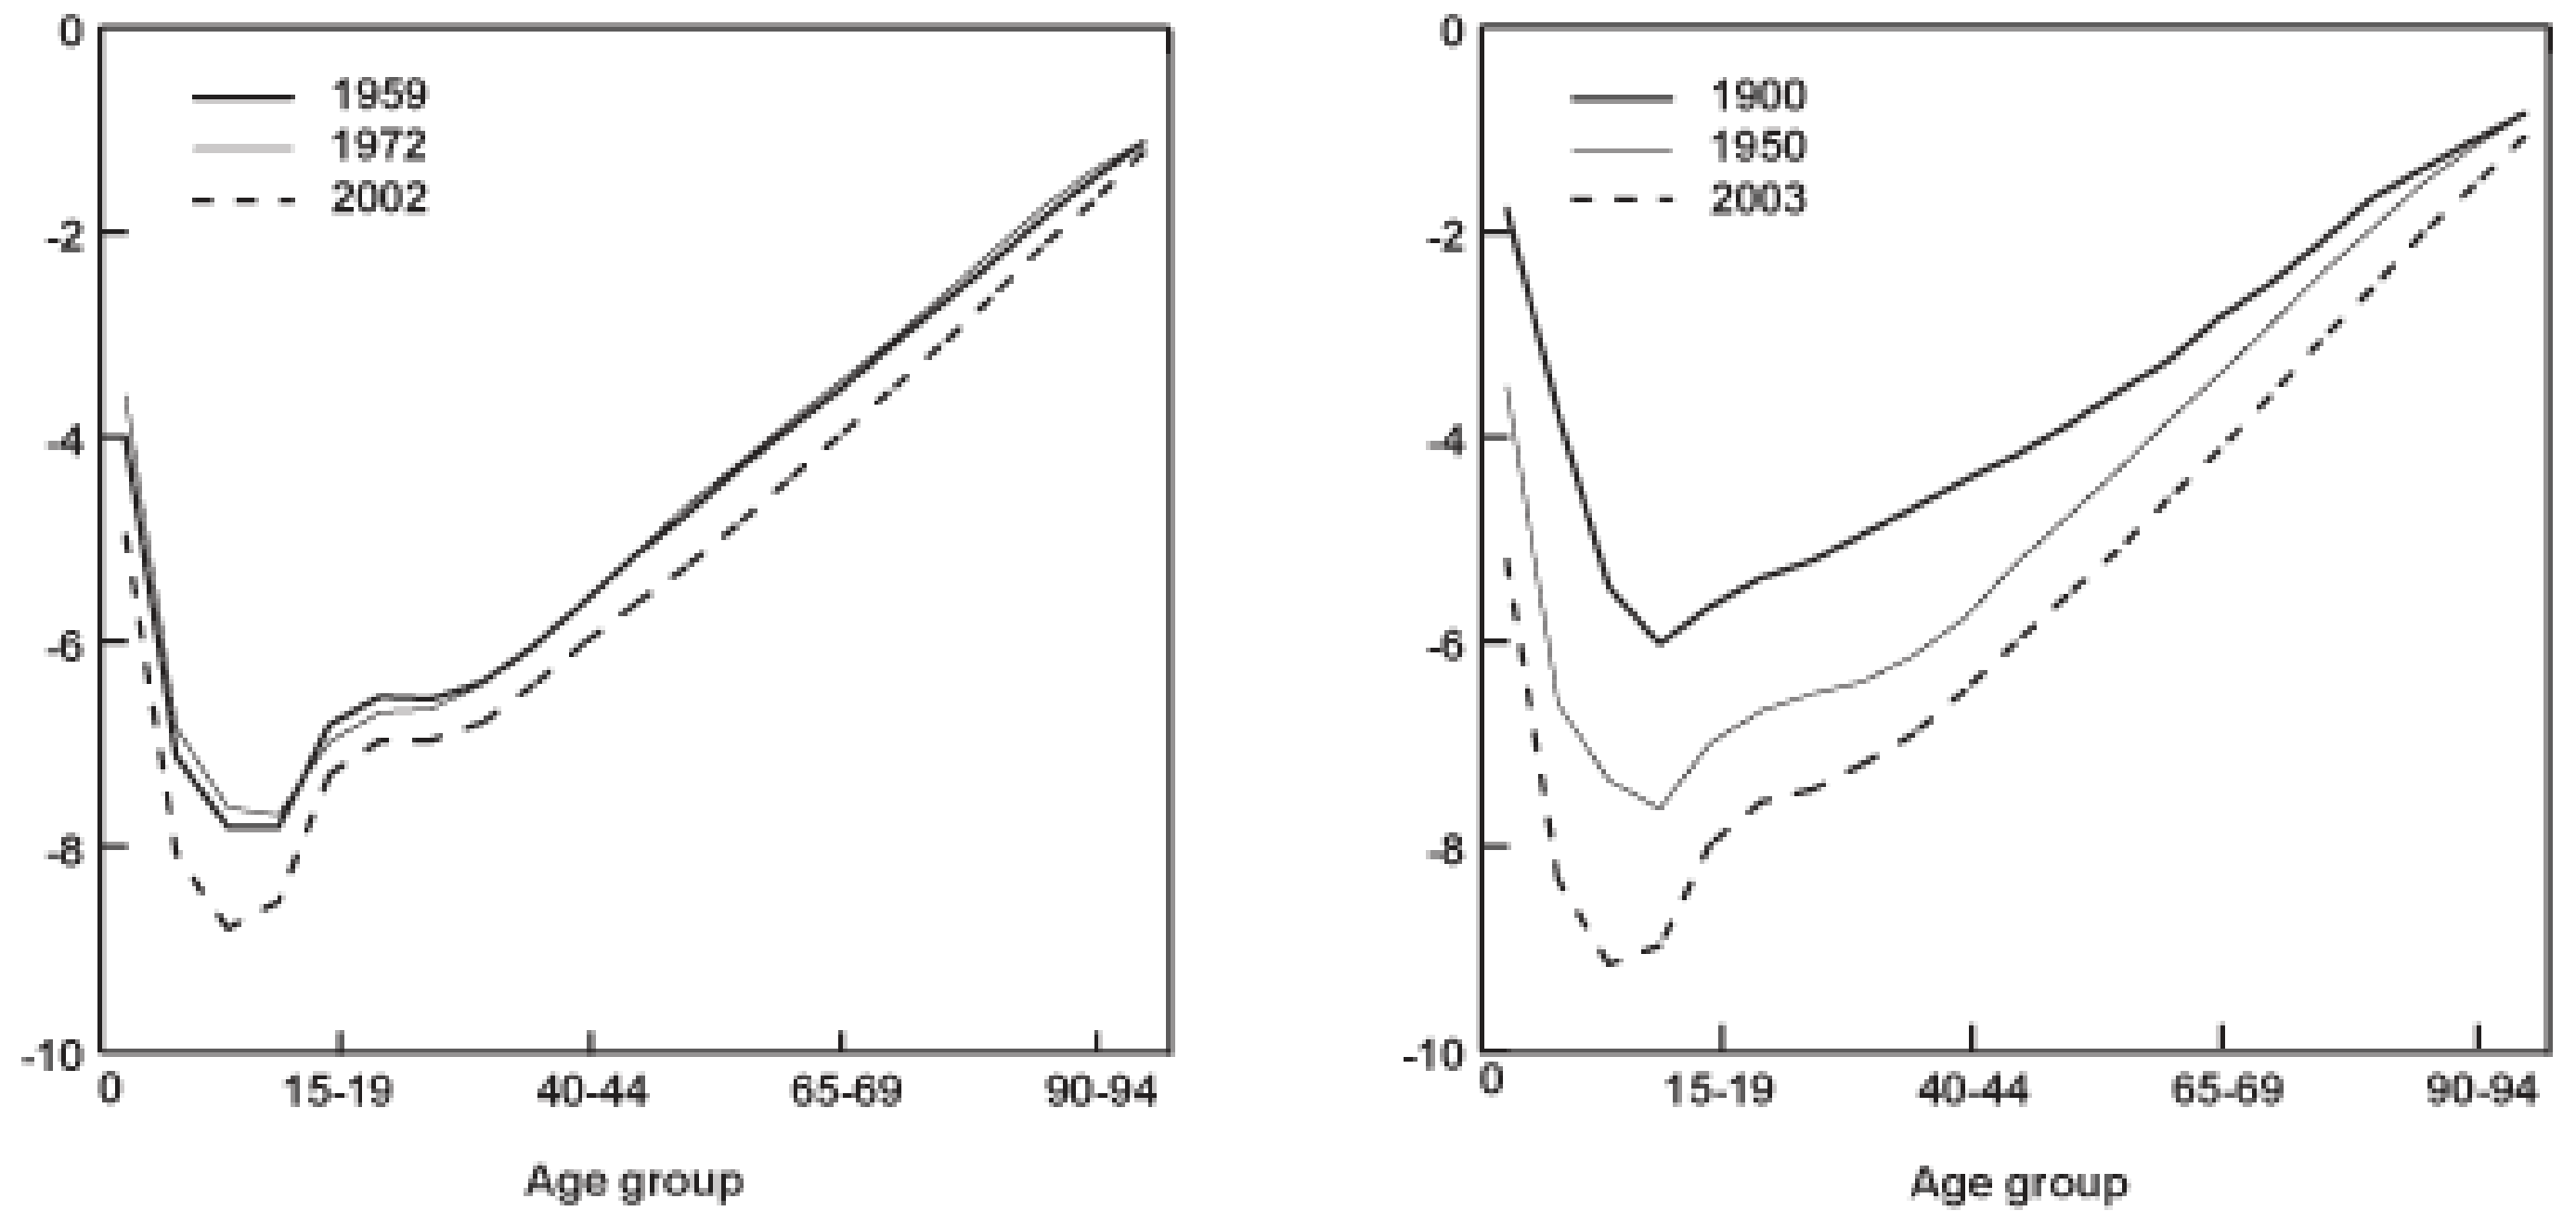 Logarithmic mortality curves for British and American populations at different points in the 20th century.